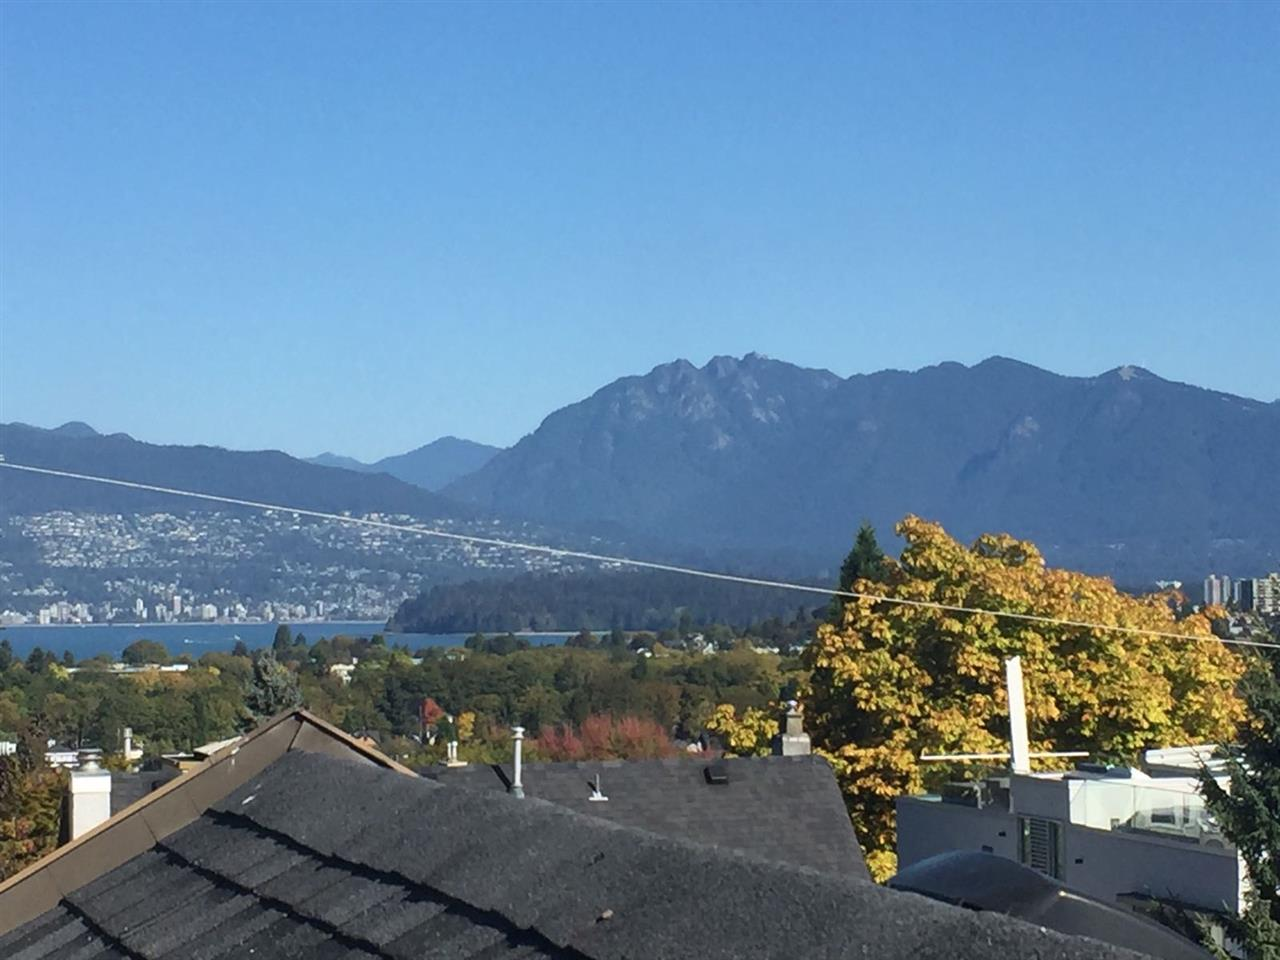 Main Photo: 3165 W 24TH Avenue in Vancouver: Dunbar House for sale (Vancouver West)  : MLS® # R2111967